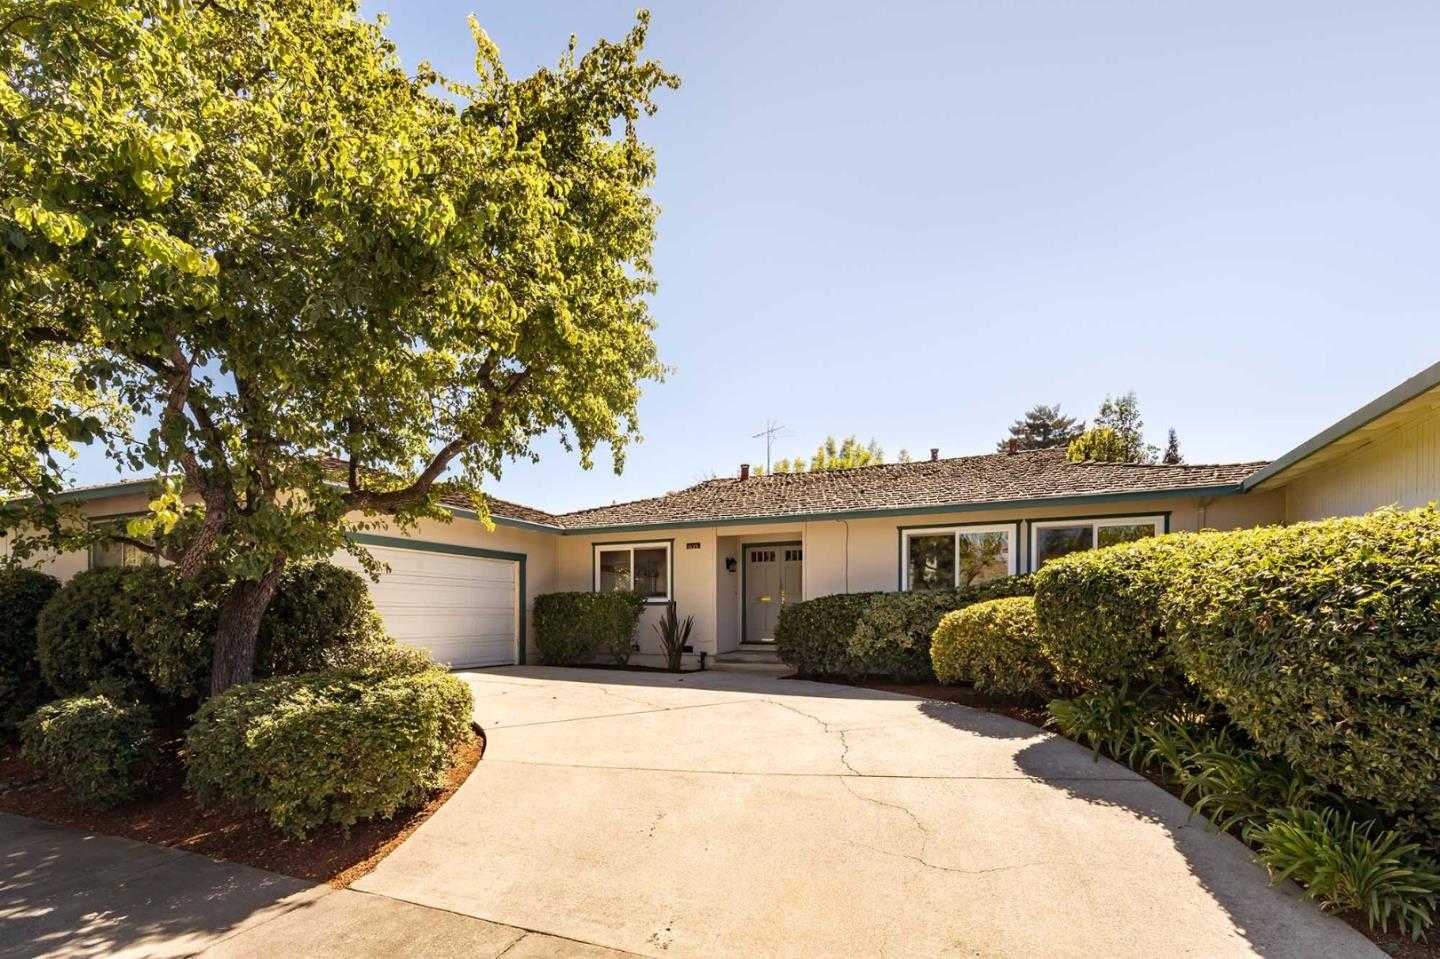 $1,698,000 - 3Br/2Ba -  for Sale in Mountain View